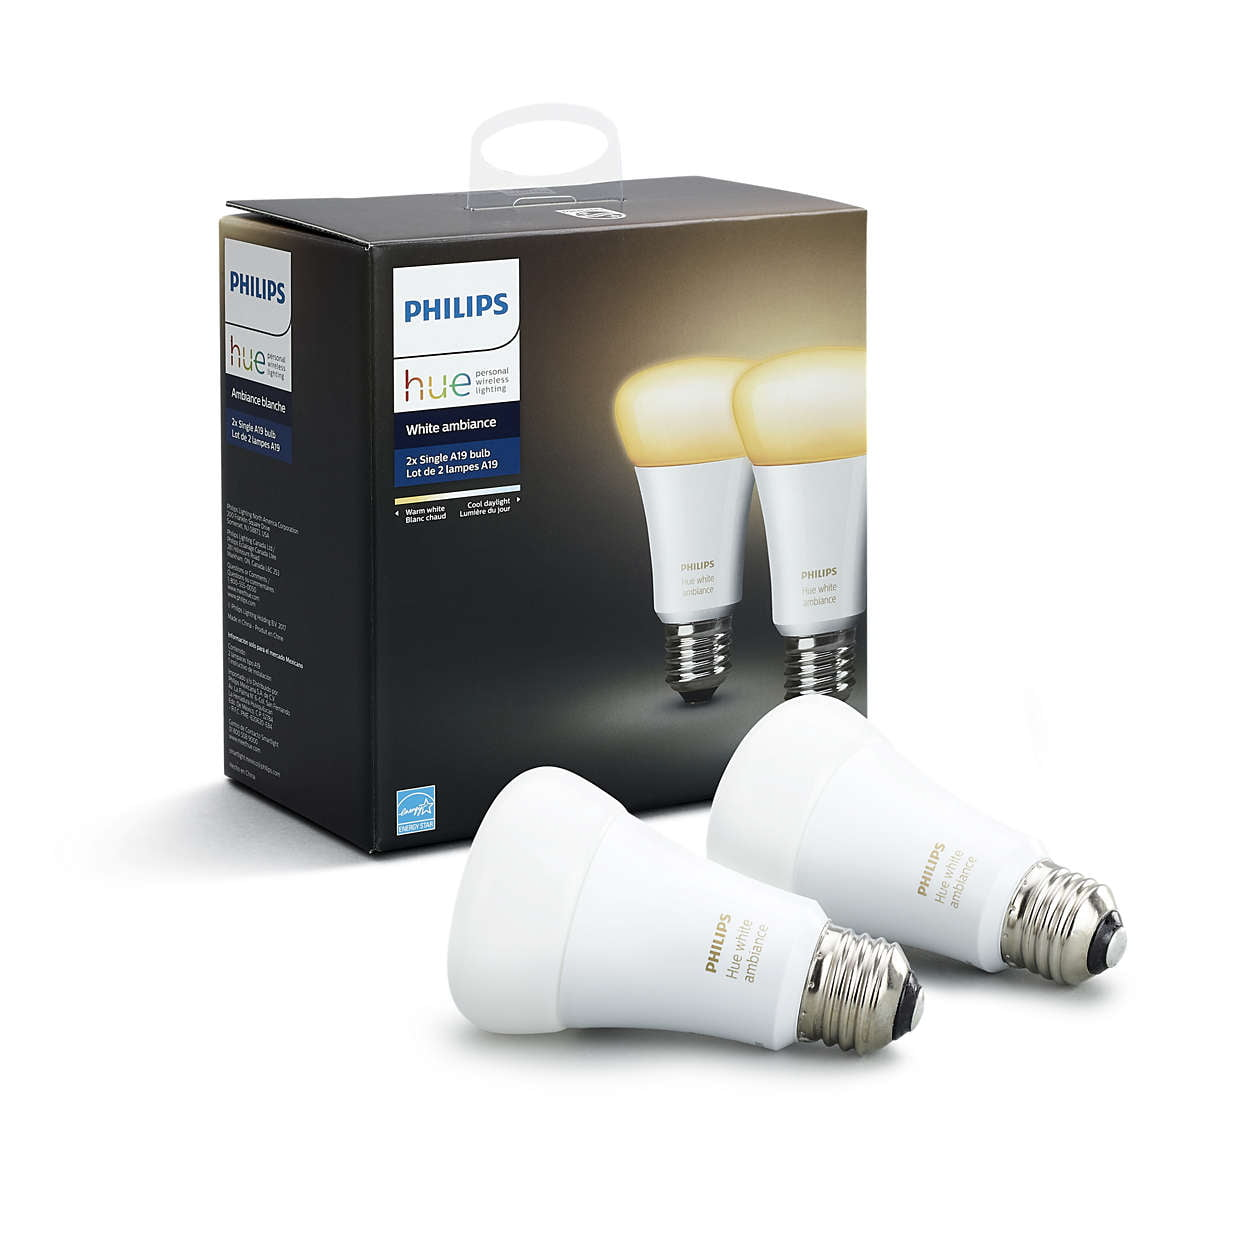 philips hue white ambiance smart a19 light bulb 60w equivalent hub required 2 bulbs. Black Bedroom Furniture Sets. Home Design Ideas